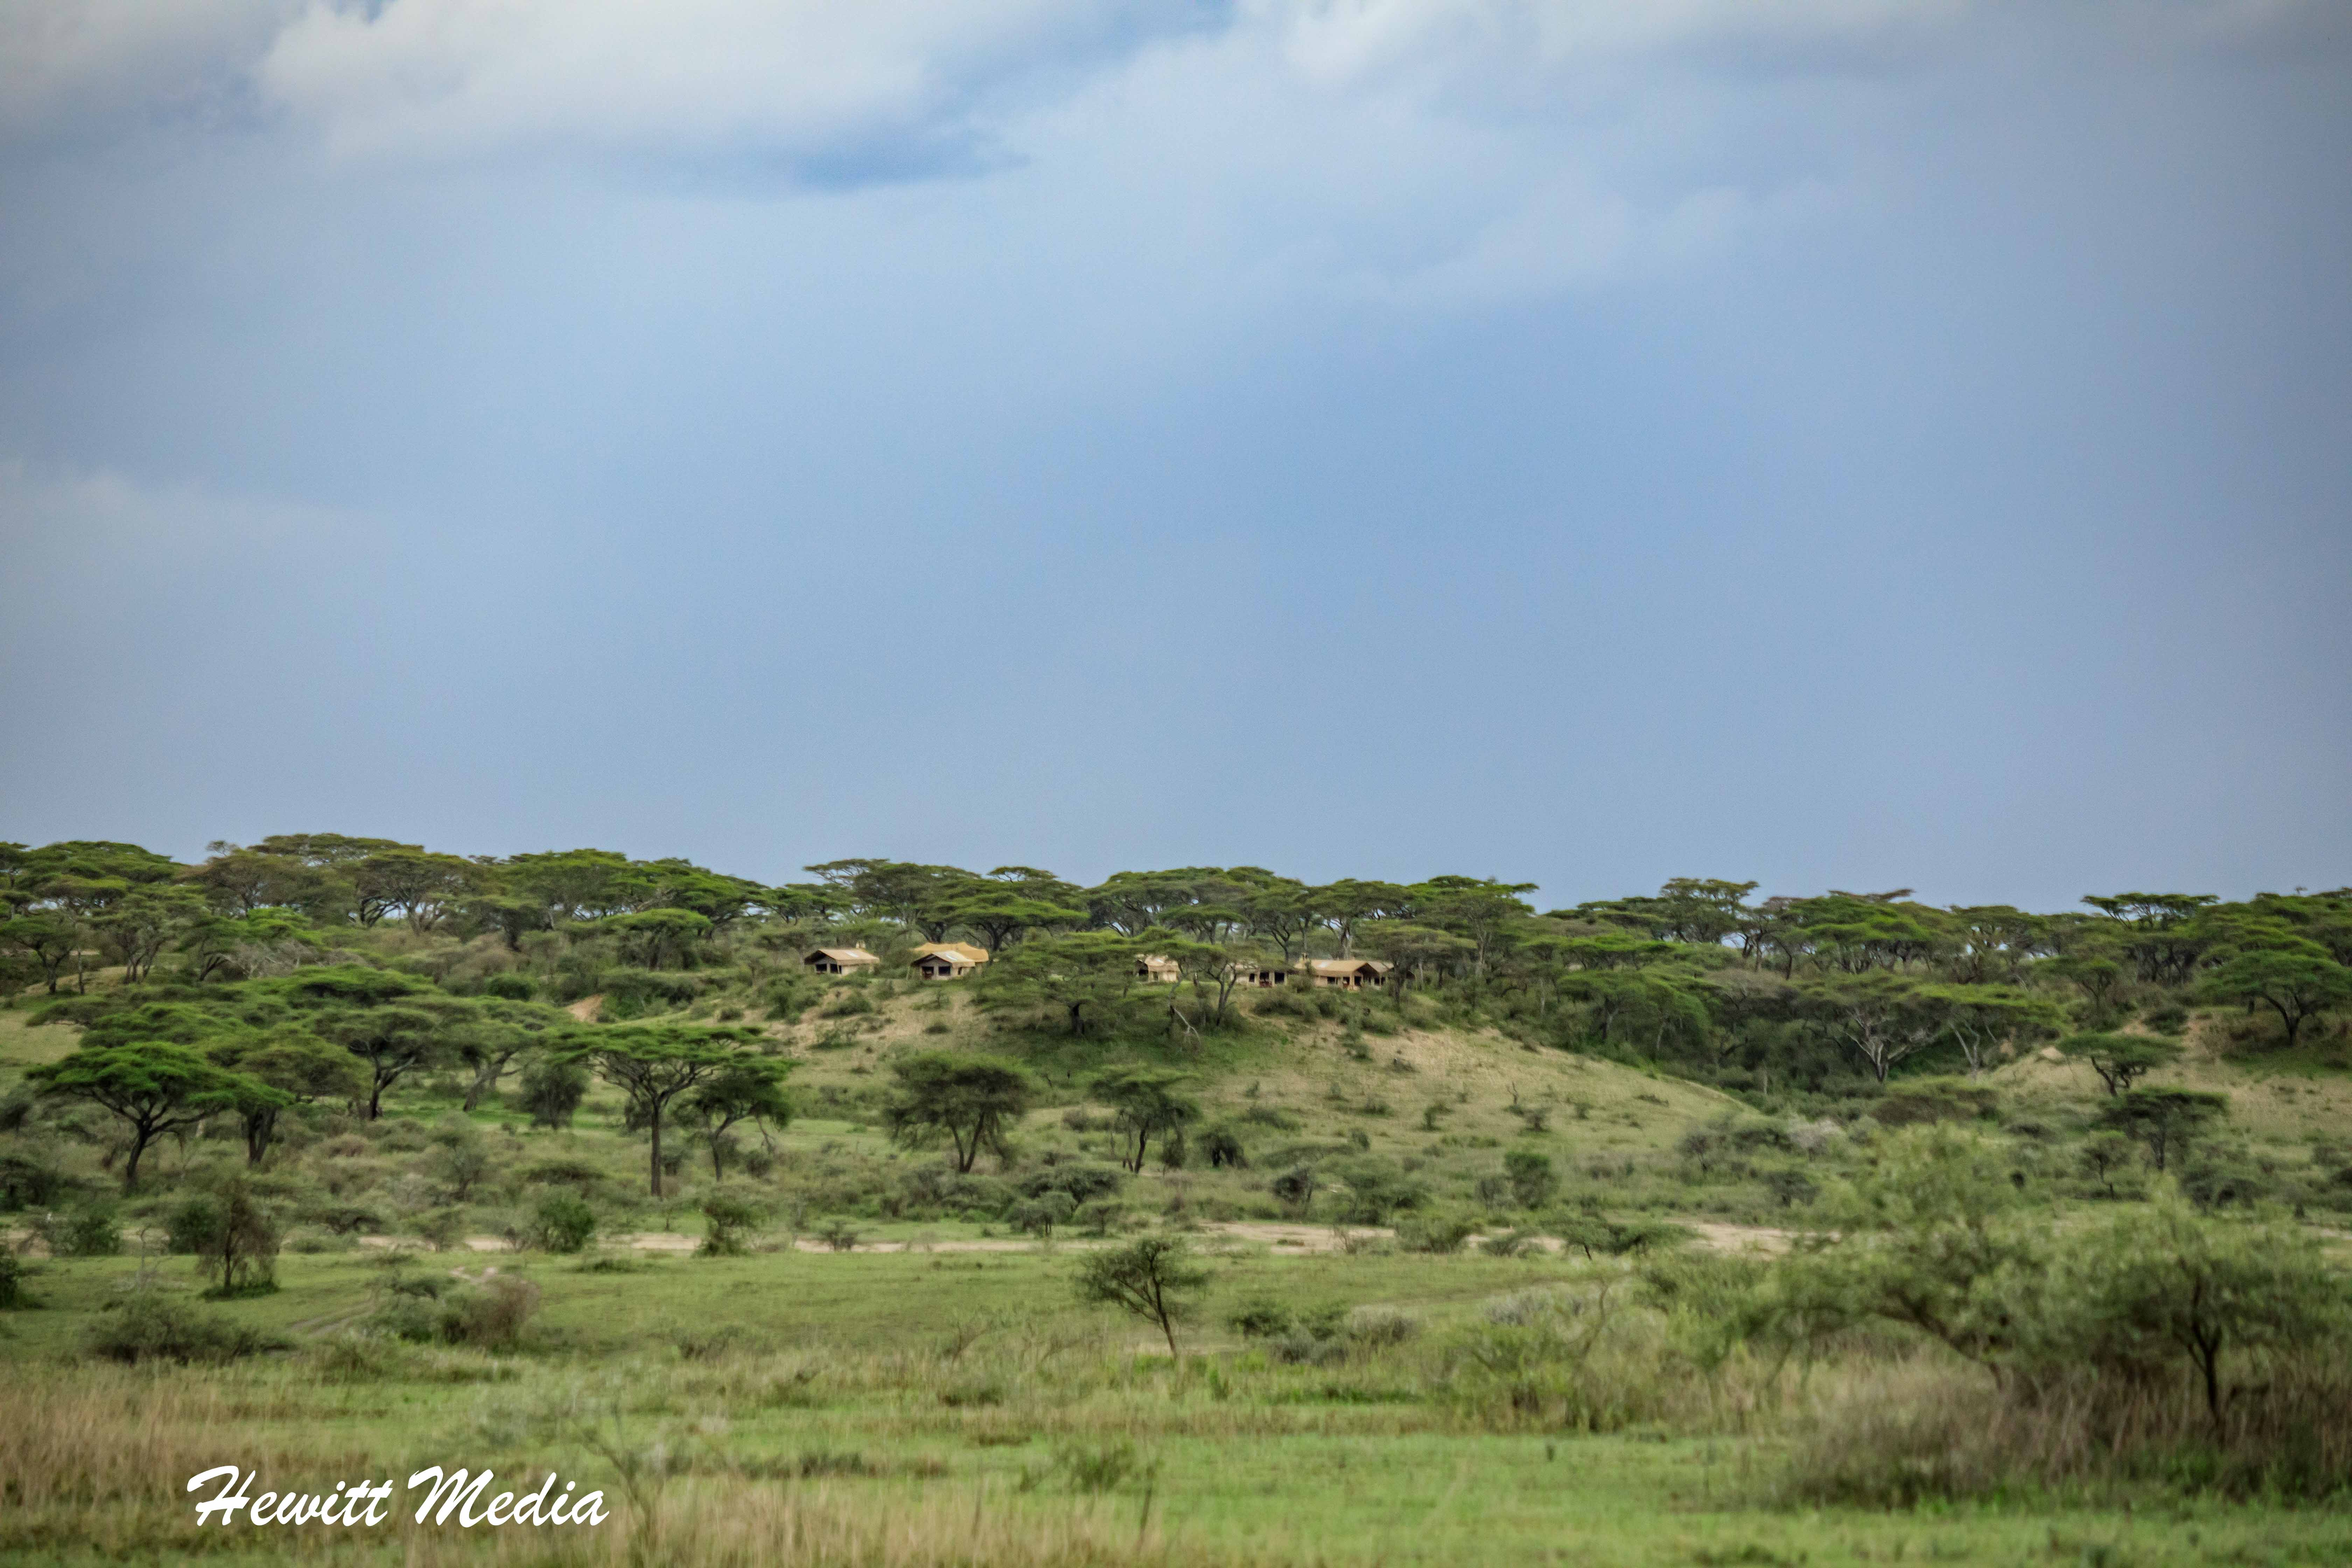 Our campsite on the bluff in the Serengeti National Park